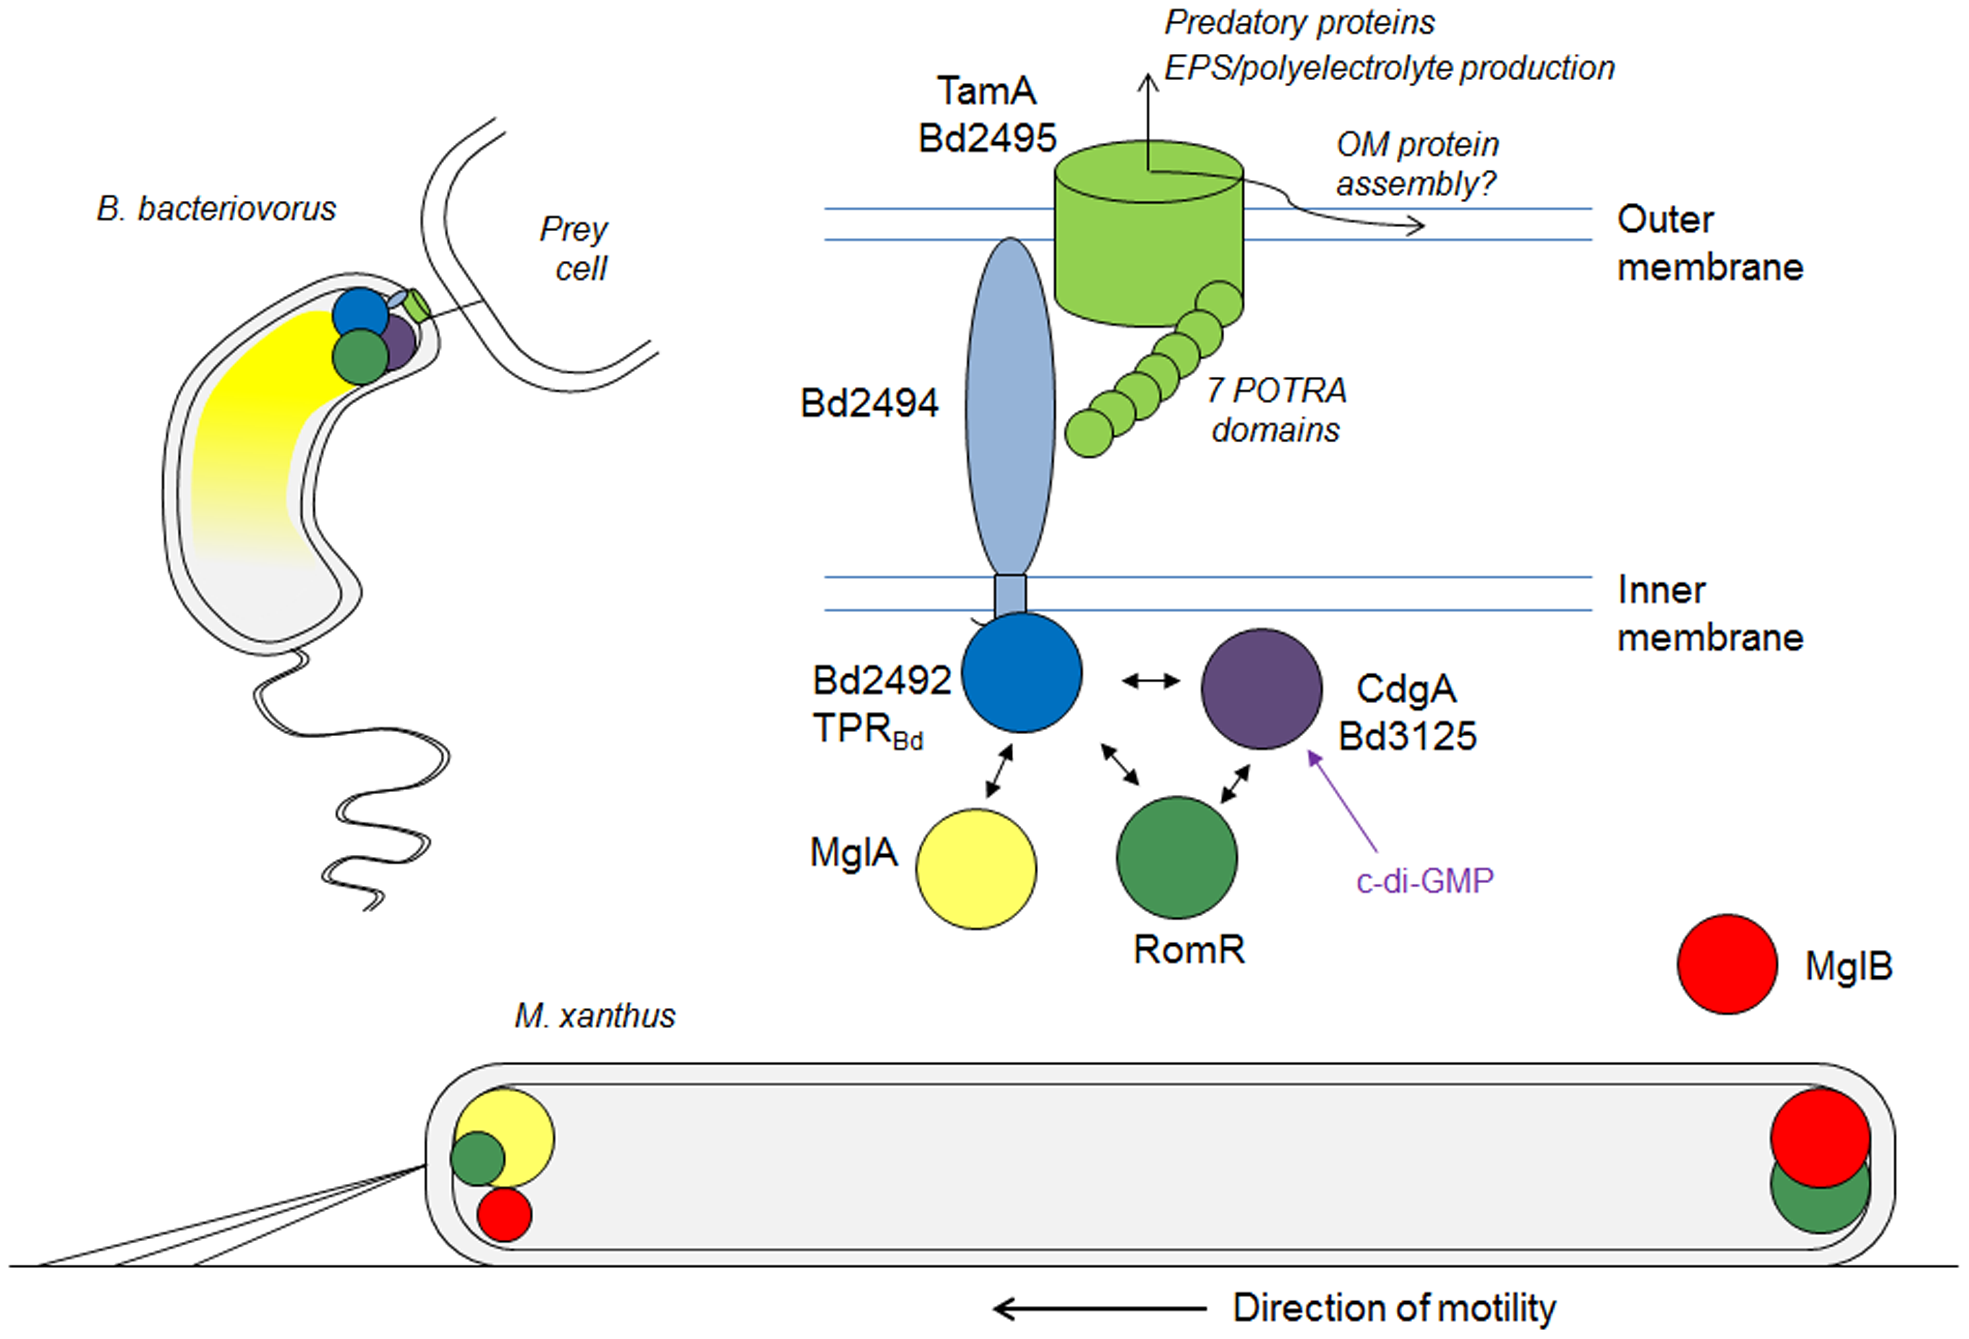 Model for <i>B. bacteriovorus</i> predatory-pole regulation during prey-invasion and its relationship to <i>M. xanthus</i> bipolar motility-control proteins.